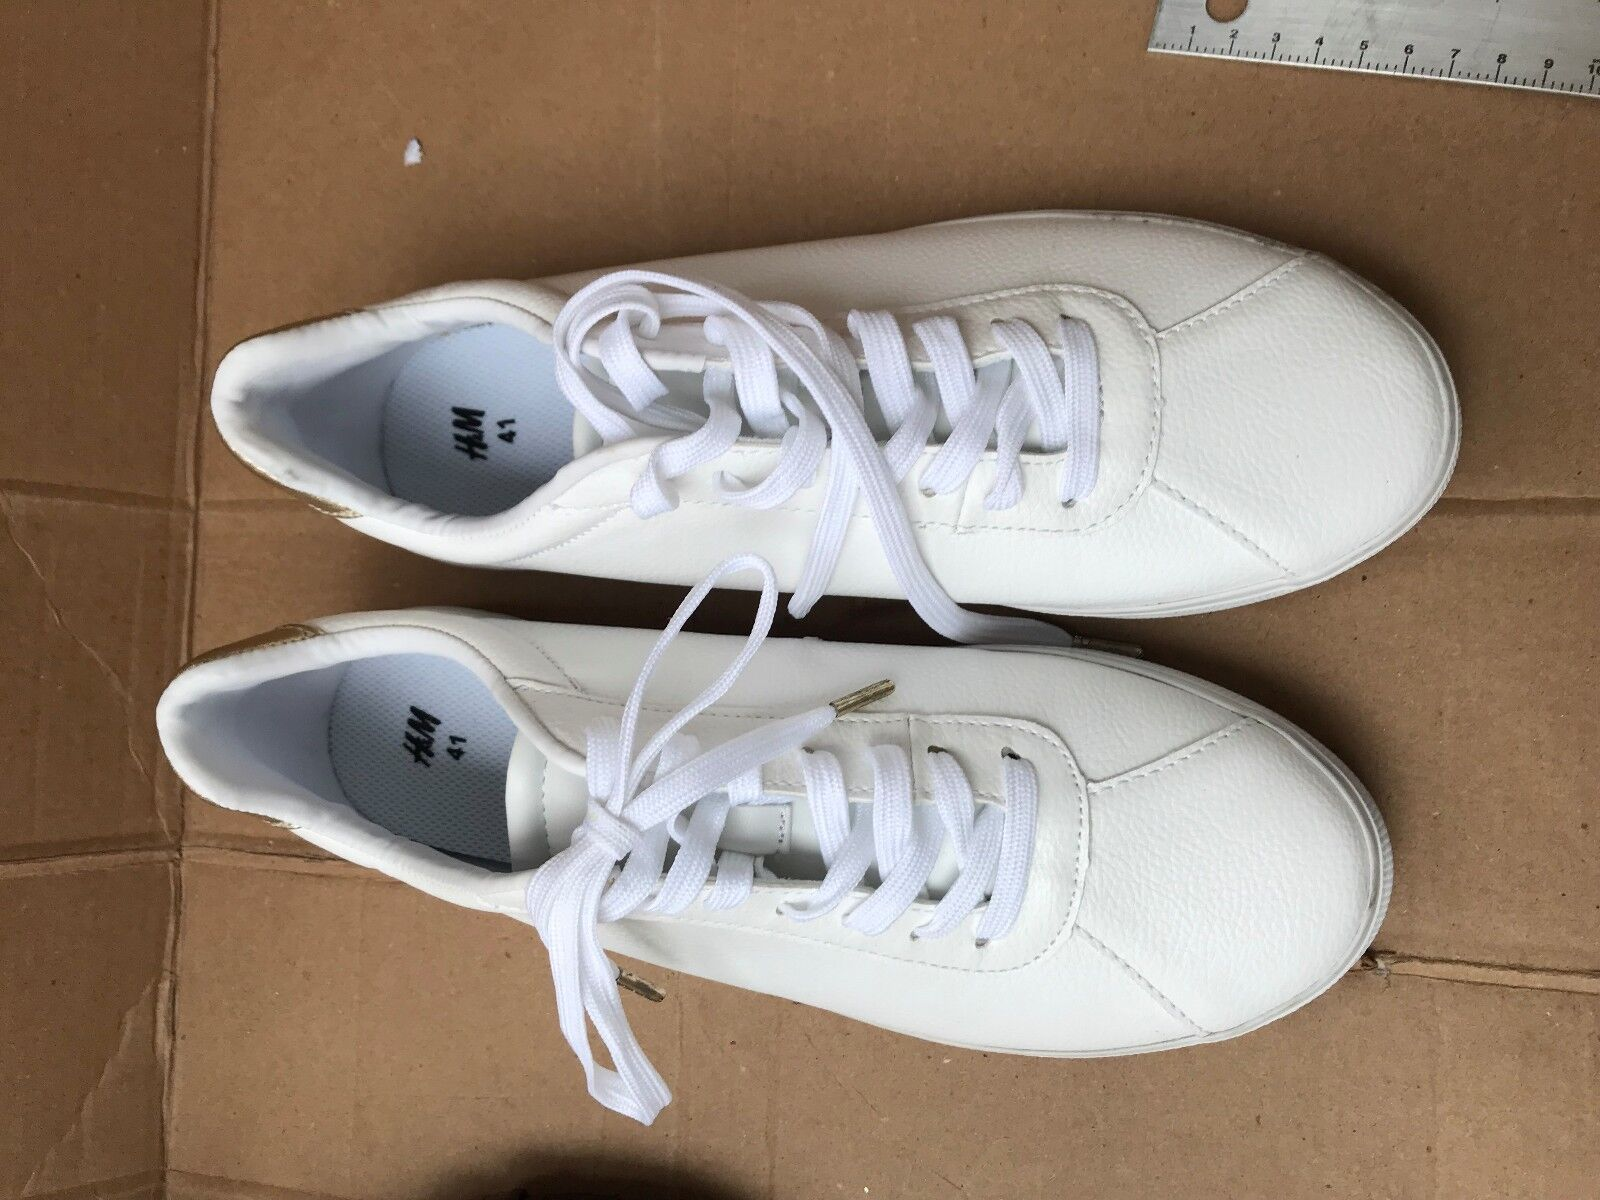 SNEAKERS TENNIS SHOES SIZE 9.5M